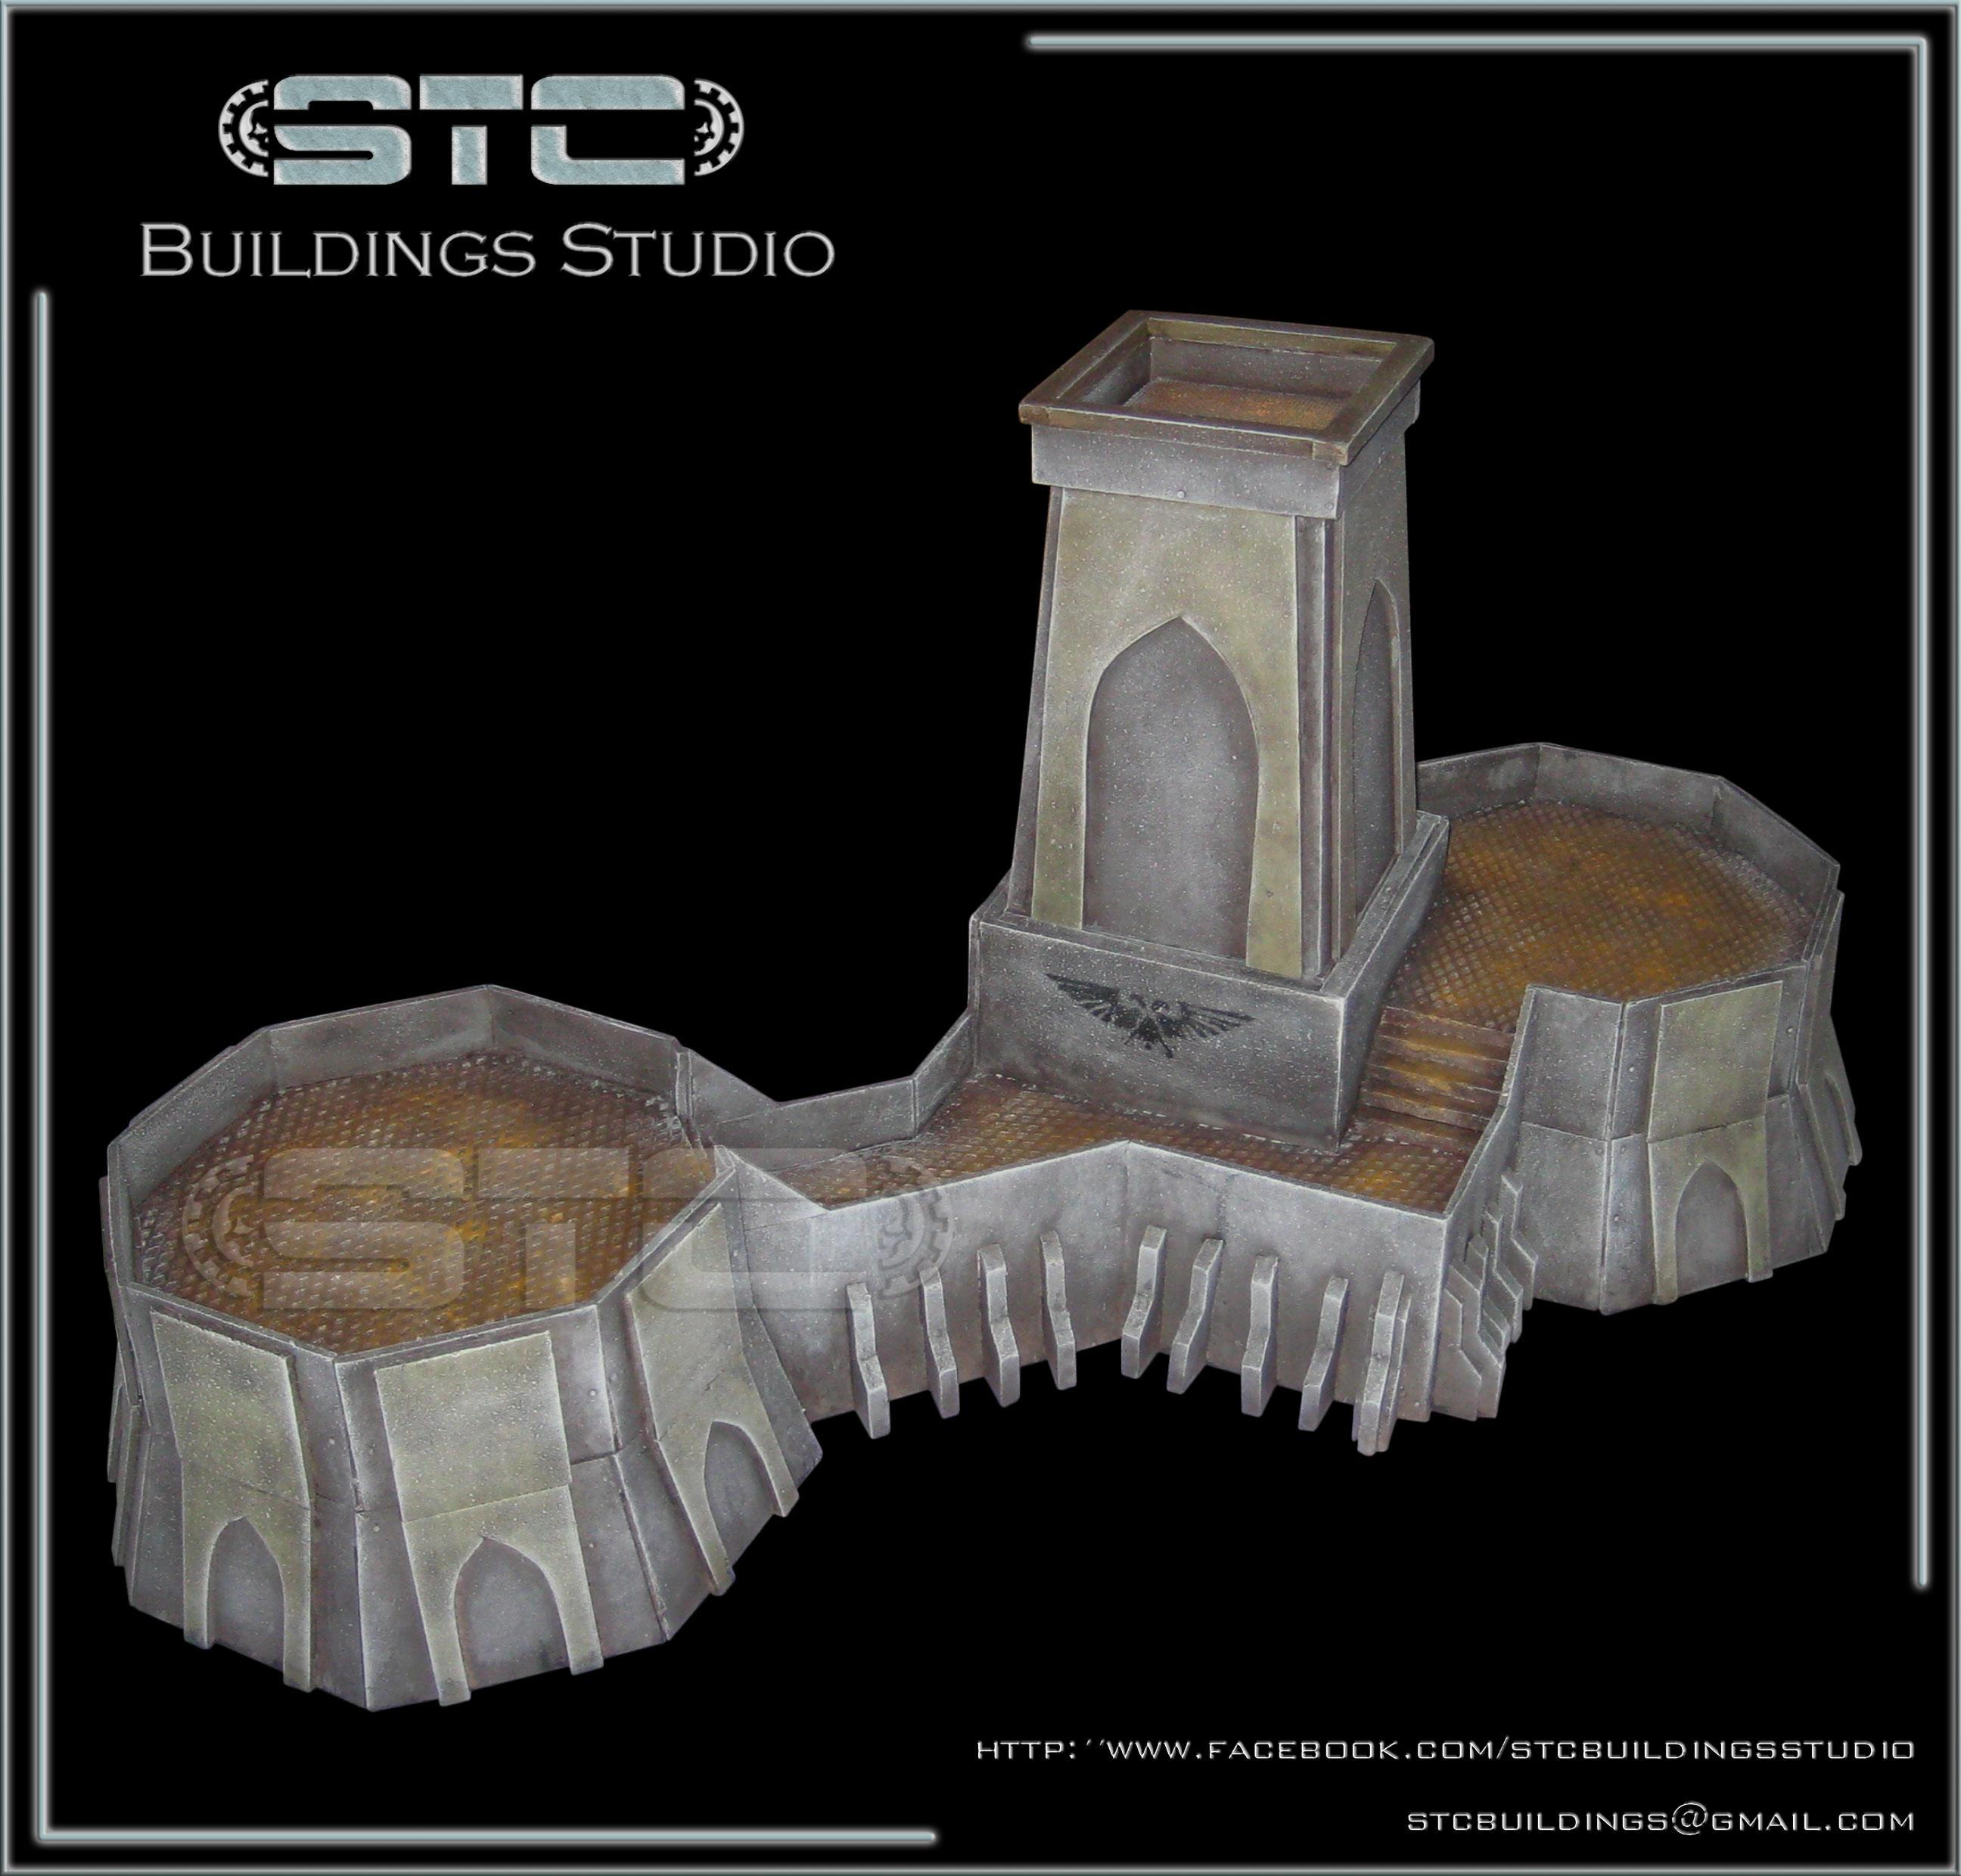 Barrack, Bunker, Fortress, Game Table, Imperial, Imperial Guard, Tabletop, Terrain, Terrains, Warhammer 40,000